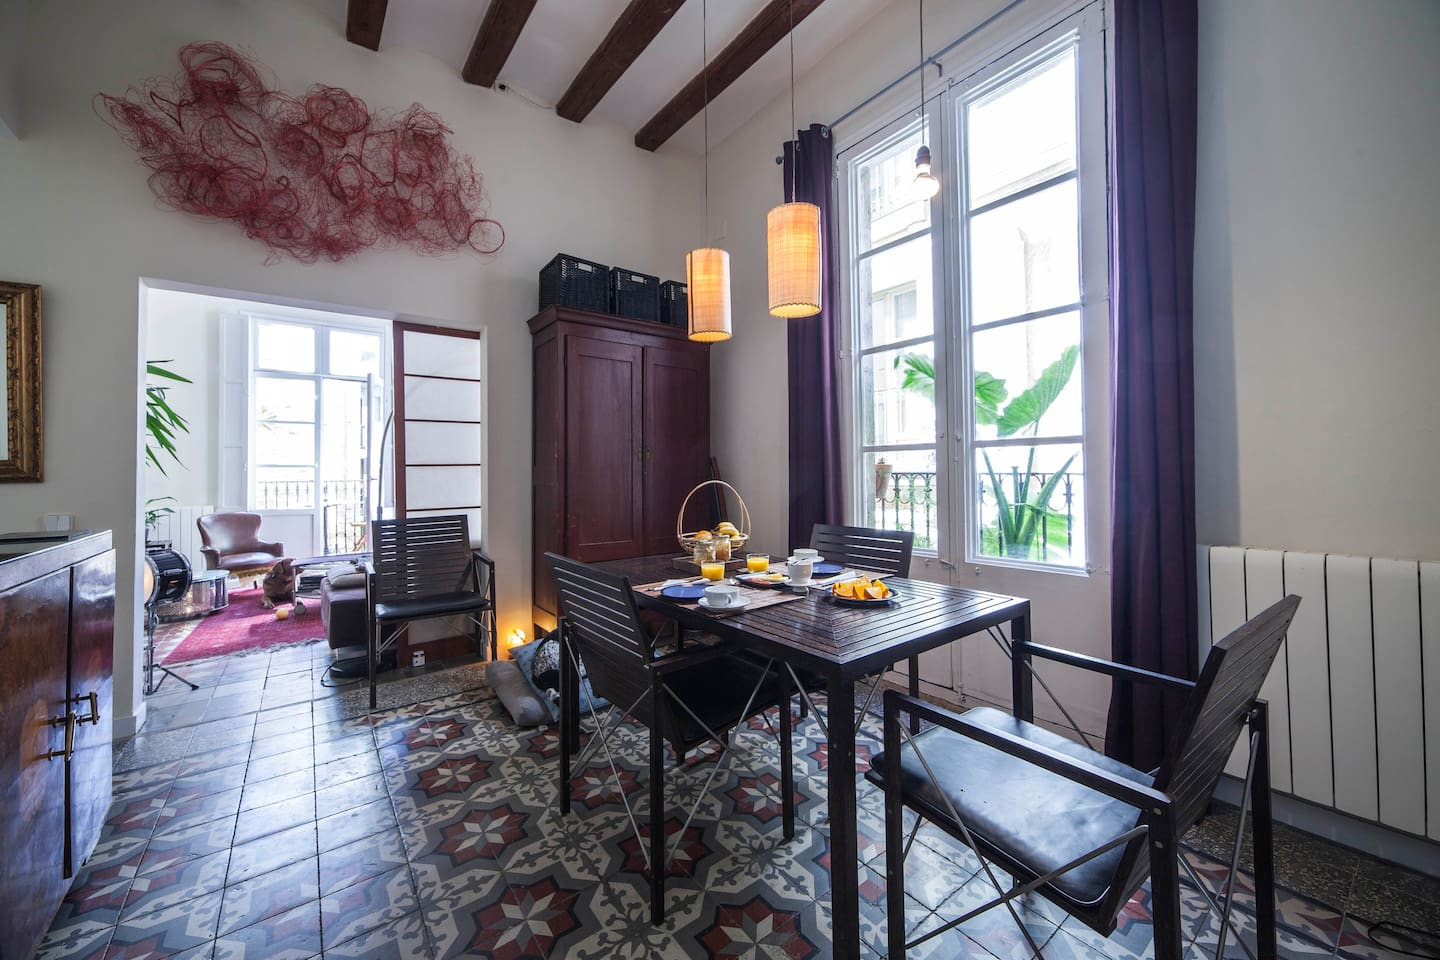 Piso in the heart of Gotico: dining room, the heart of the house